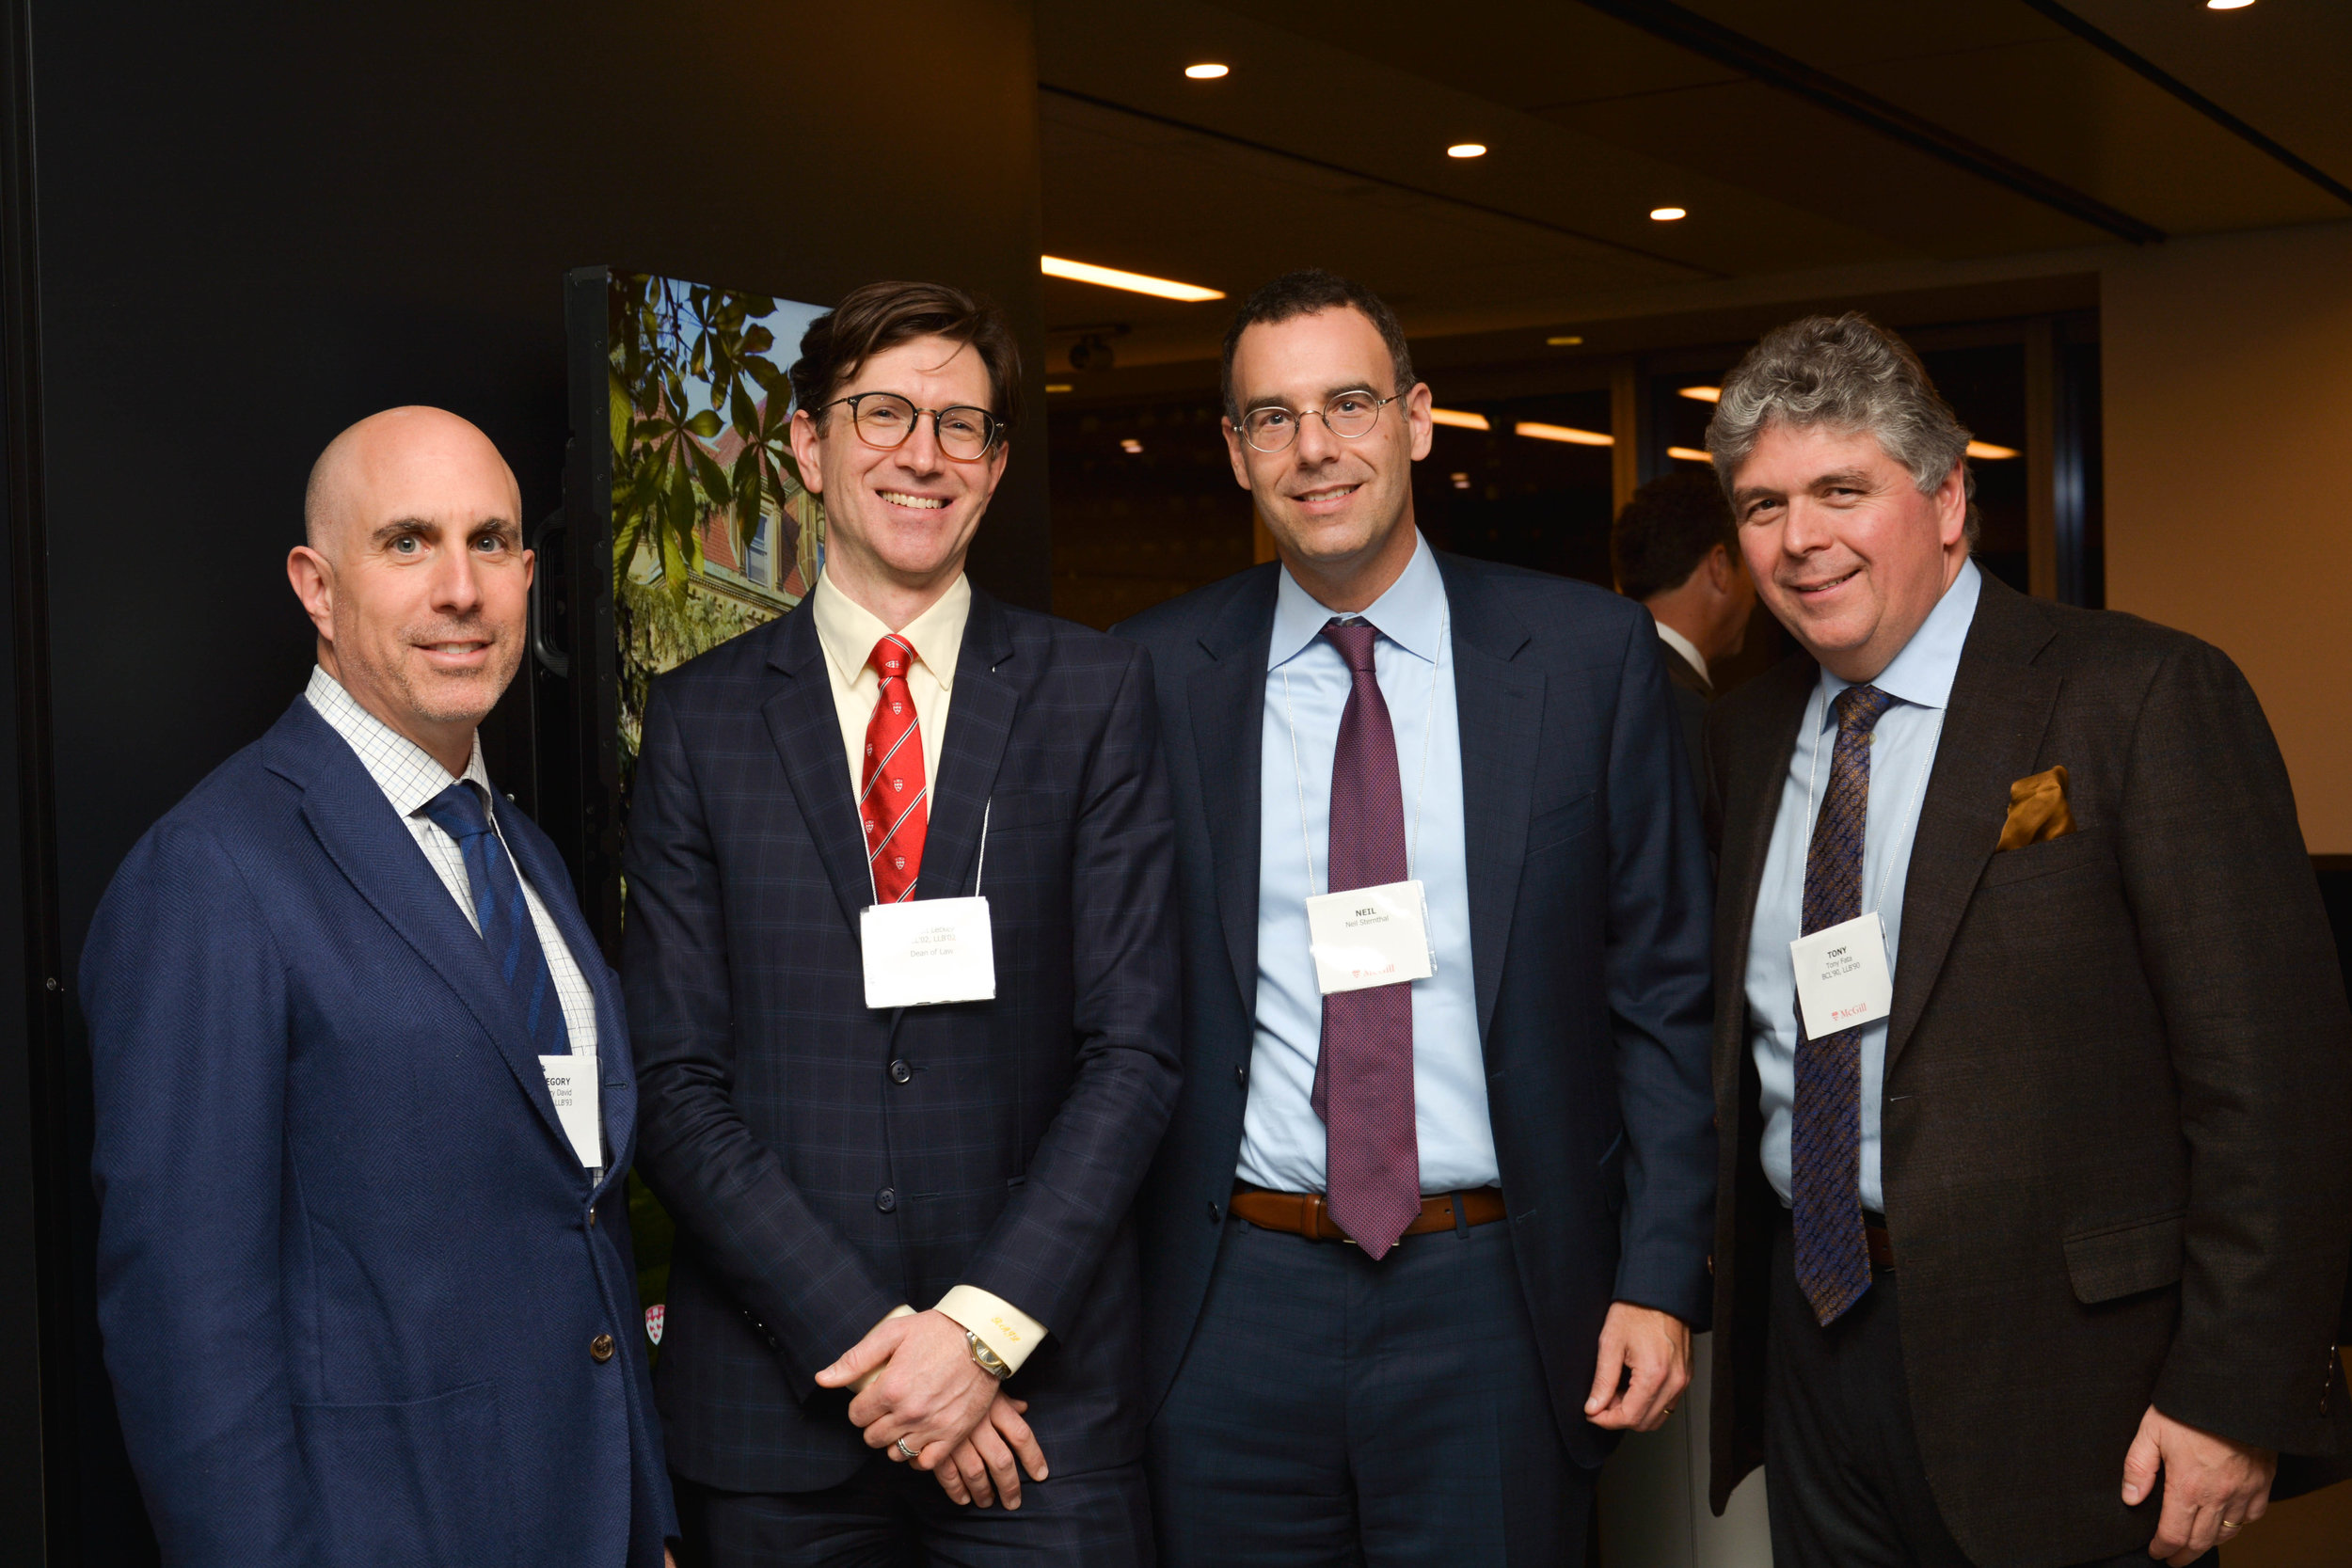 Dean Leckey photographed with Neil at McGill Alumni event in Toronto